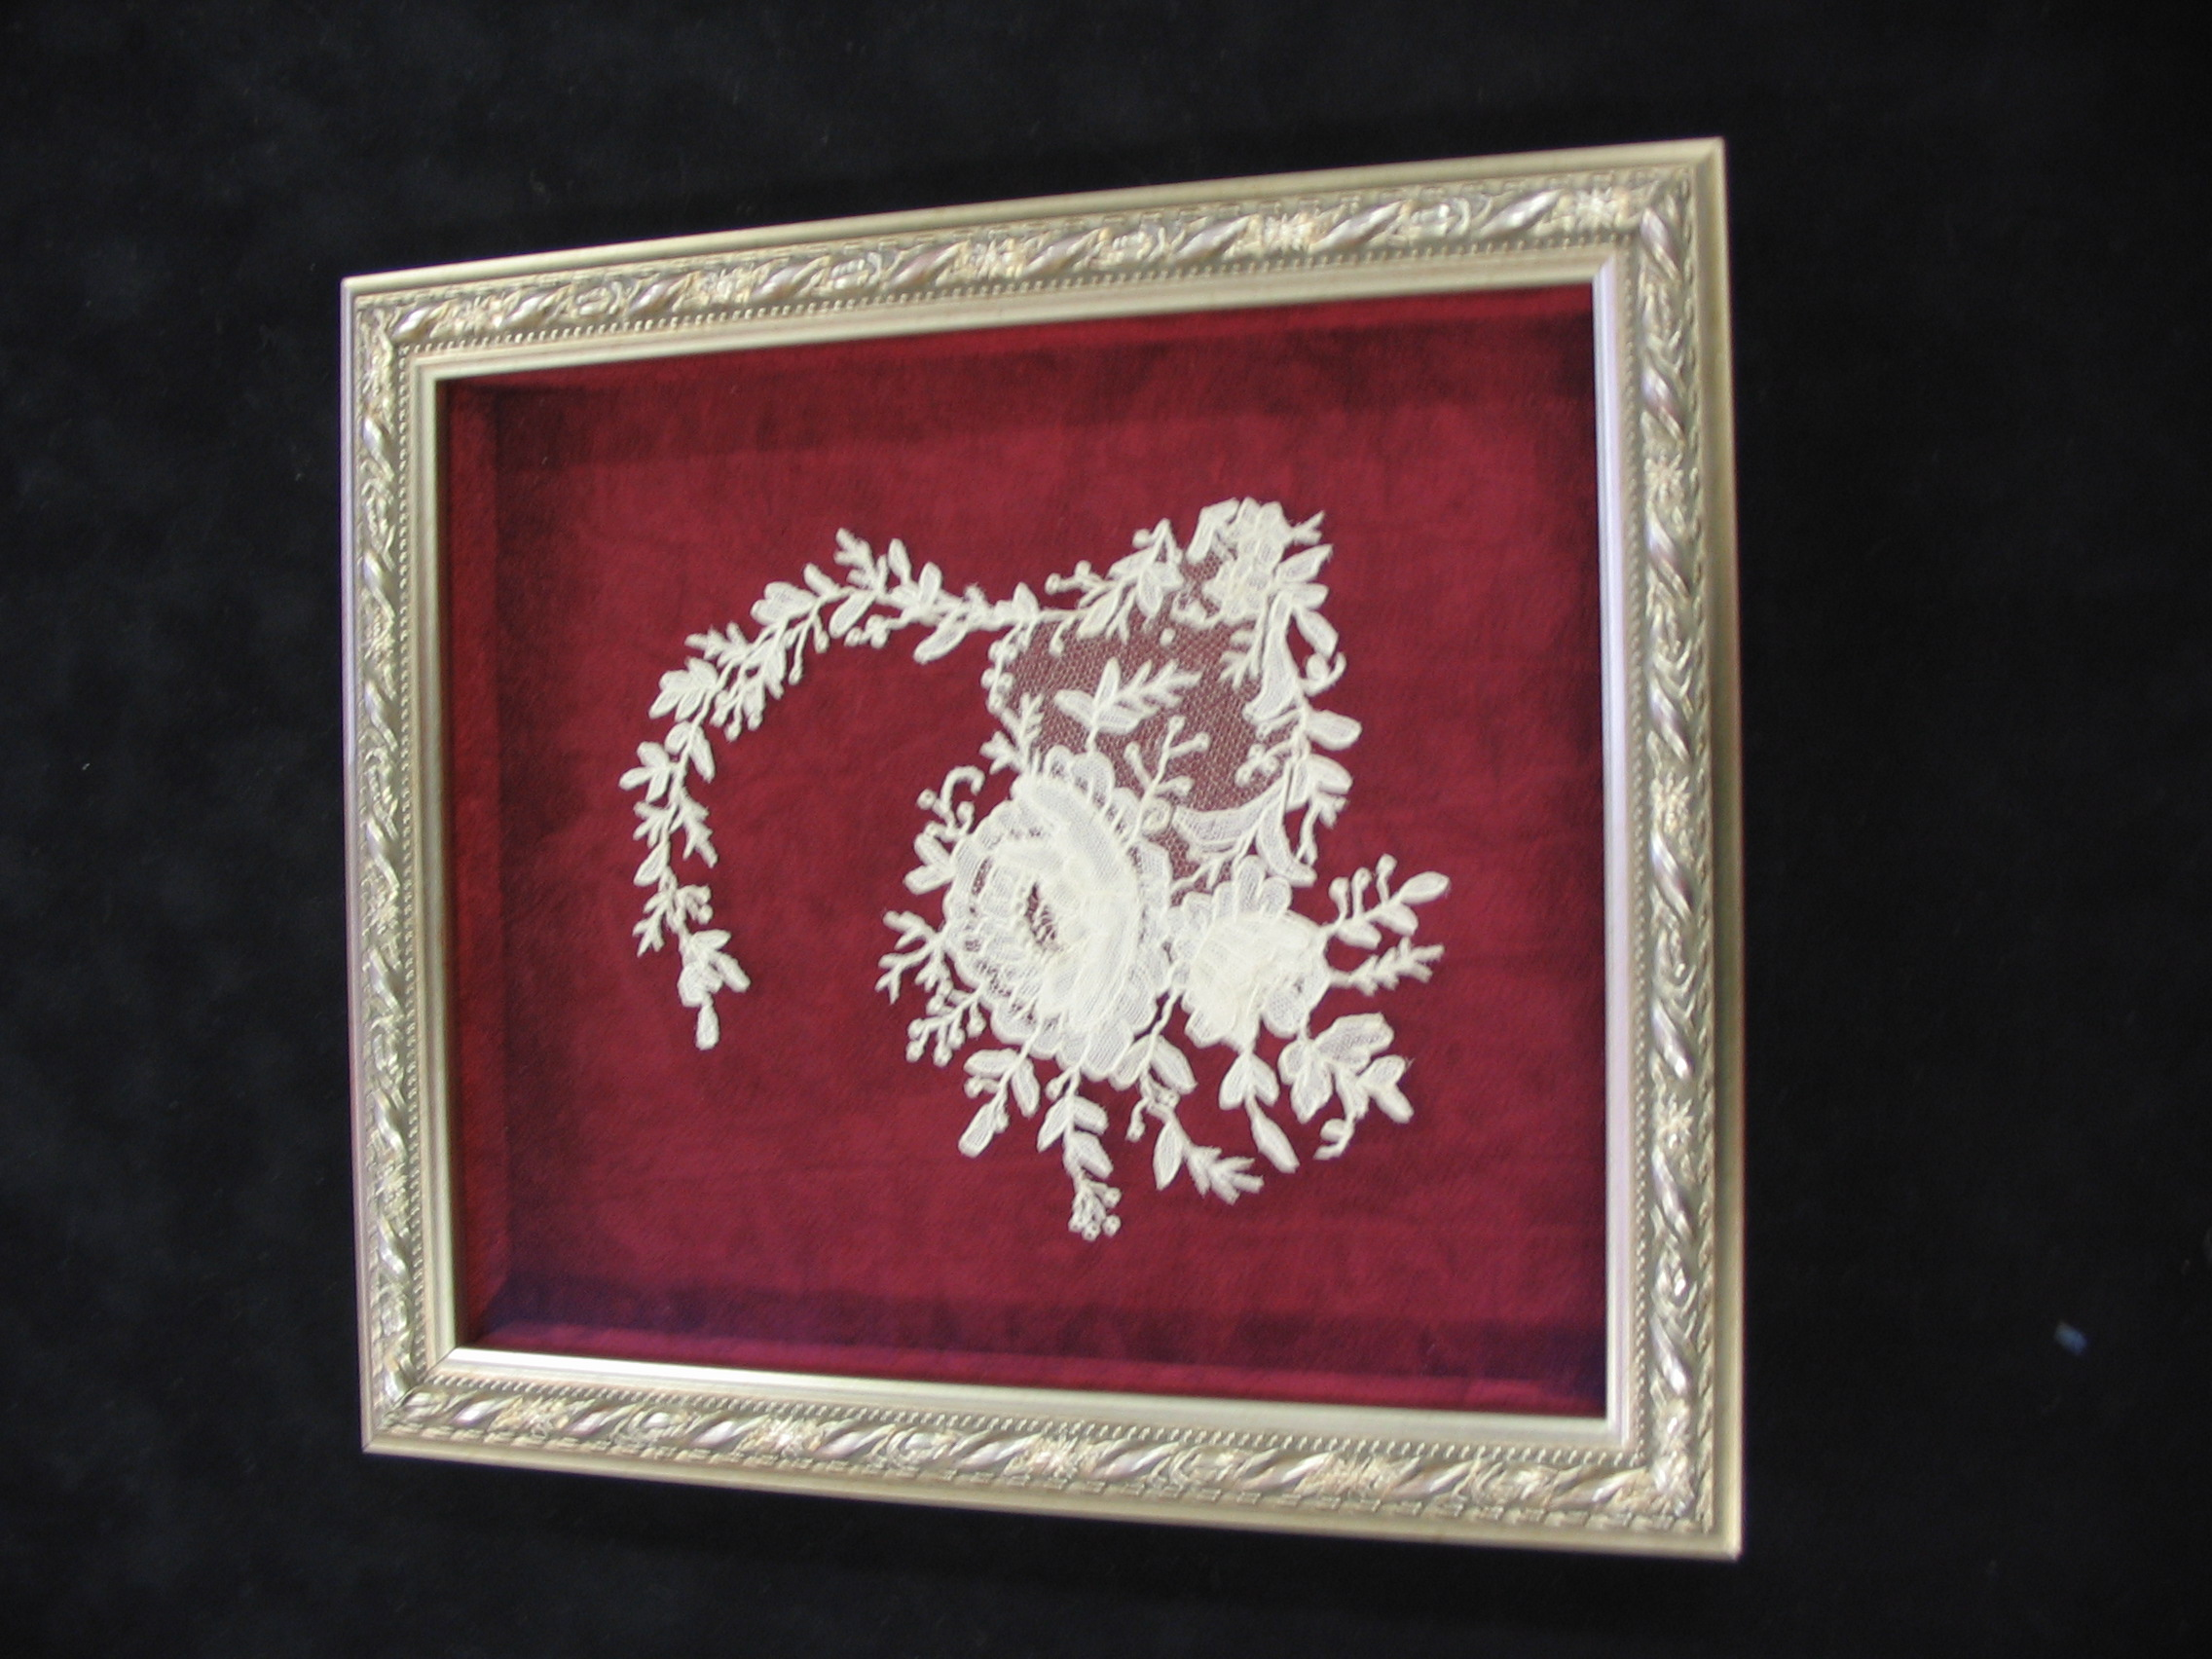 Textiles framed by The Framemakers